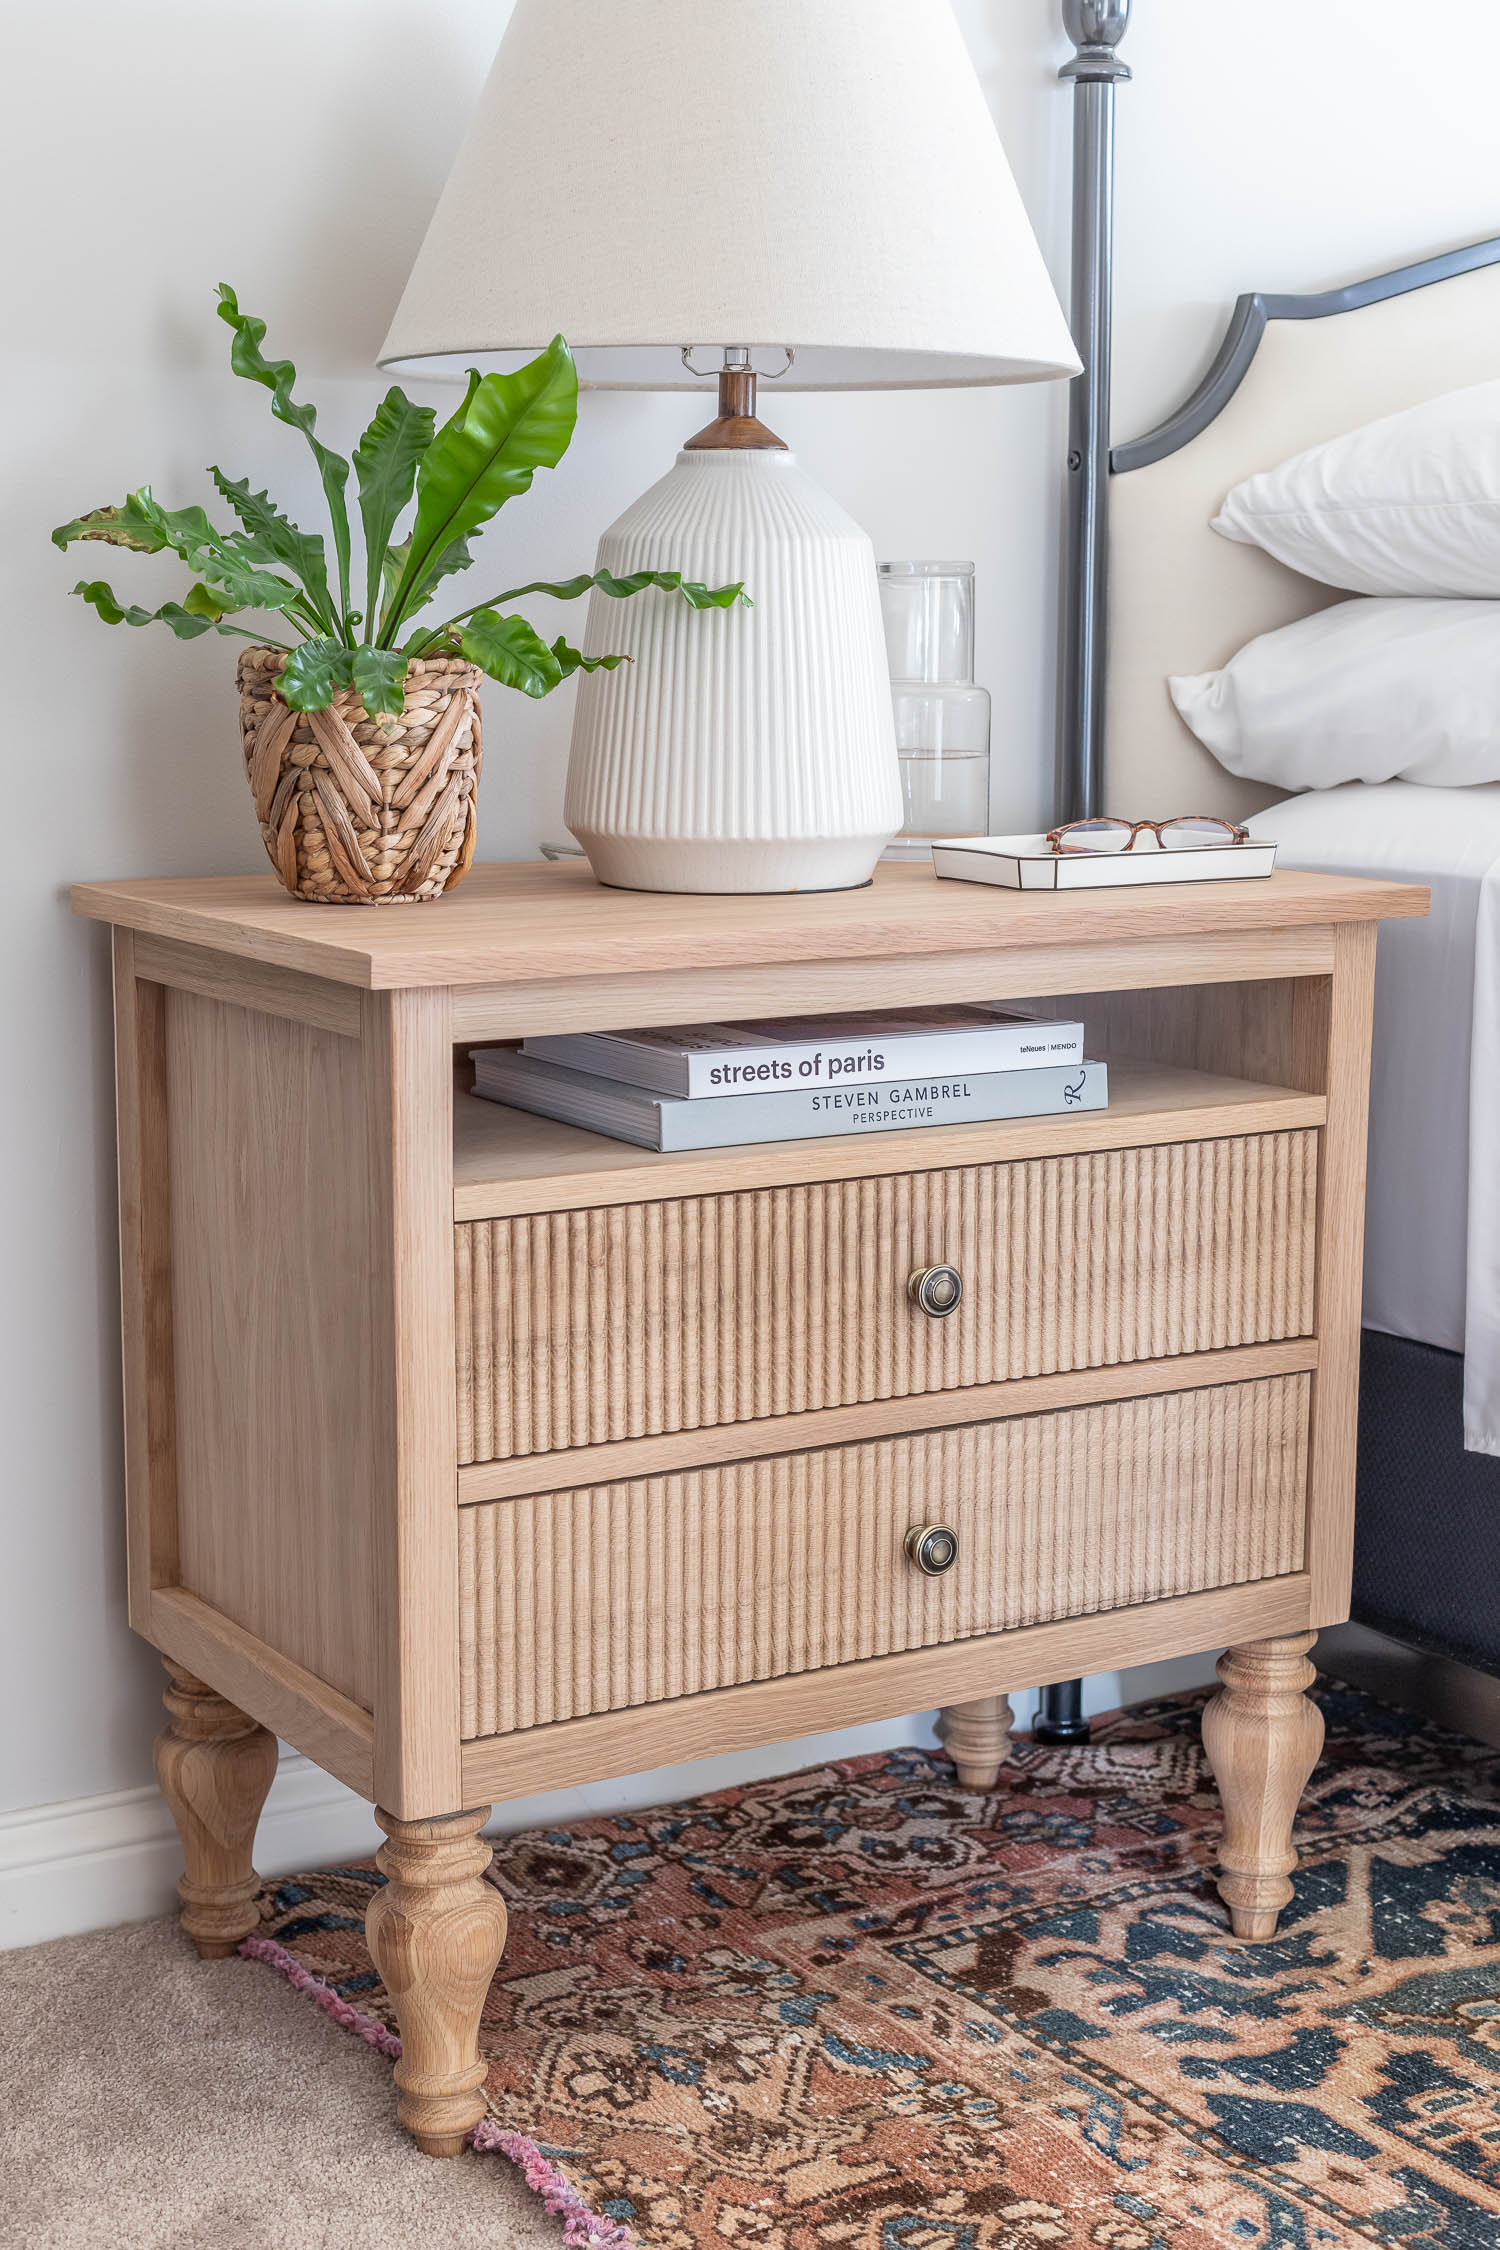 How to build a DIY nightstand - French country / Swedish Gustavian style nightstand